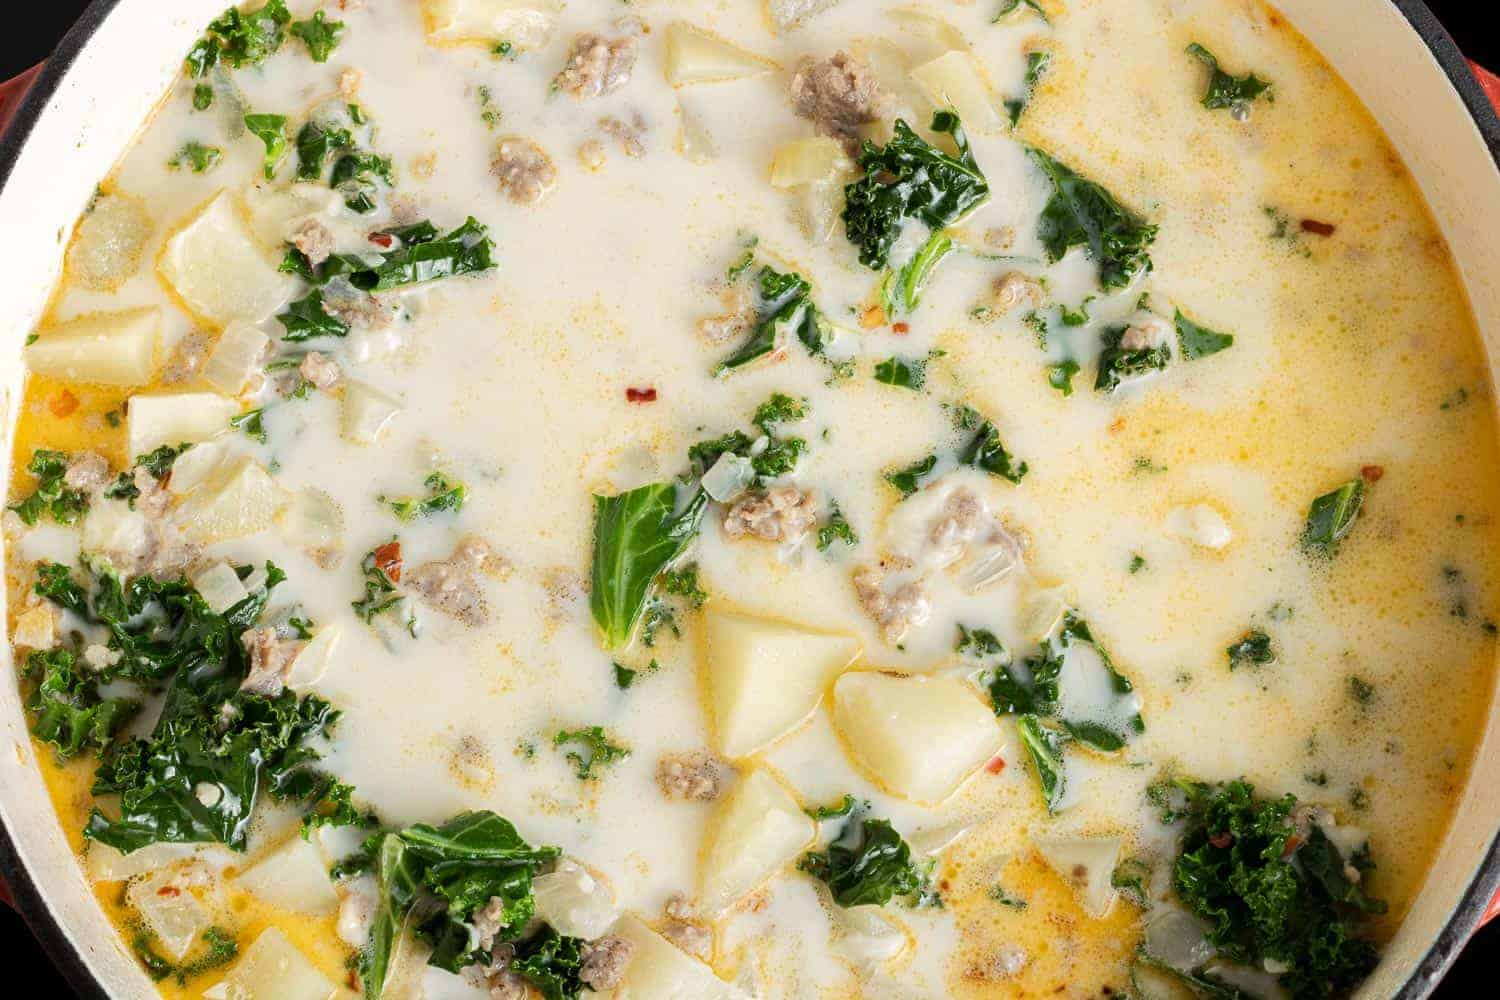 Creamy soup with kale, potatoes, and sausage.